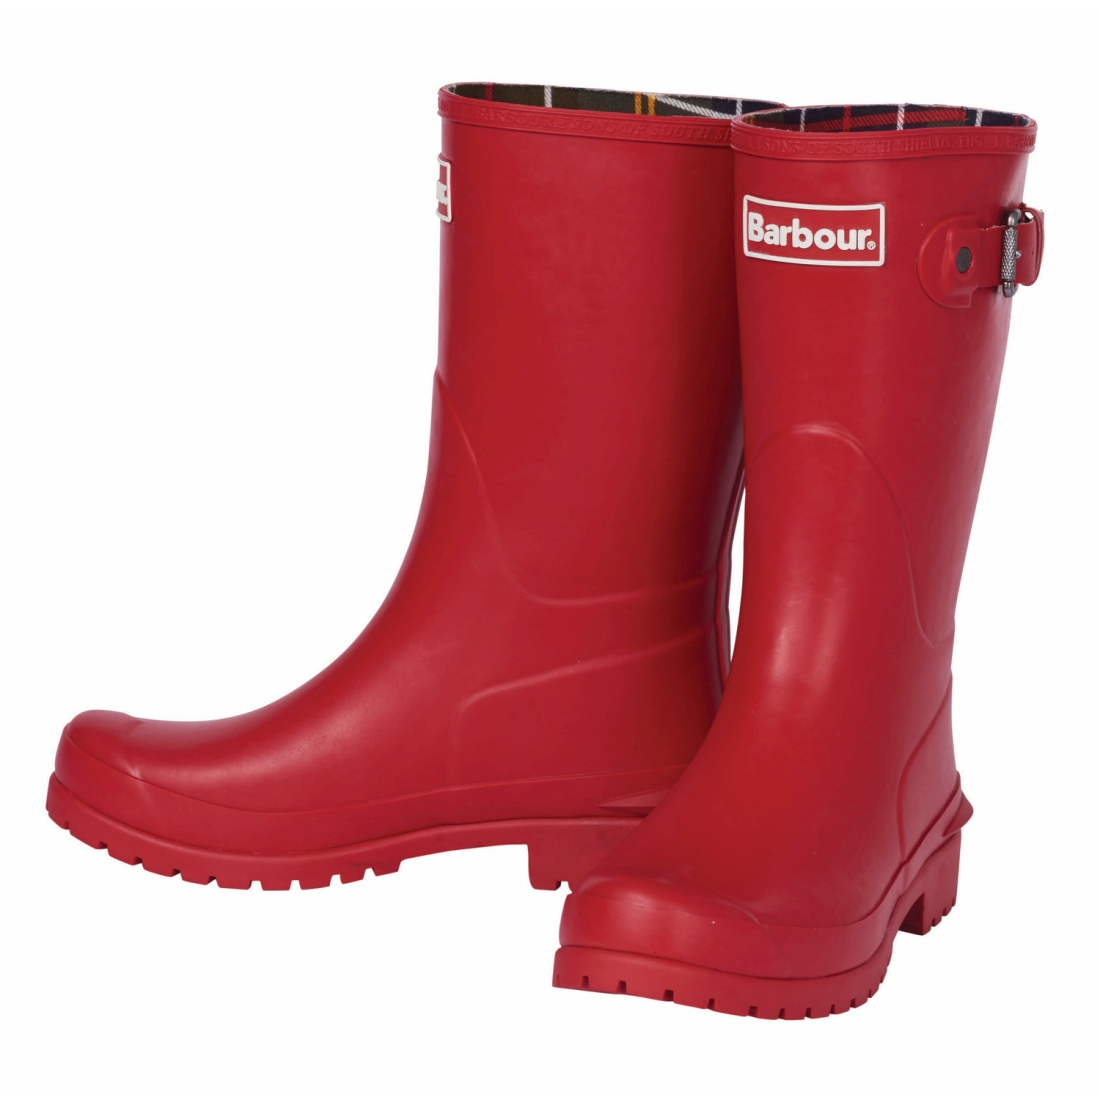 fa8f9ee0a Ladies Barbour Wellies | Country Boots & Wellies | Naylors.com